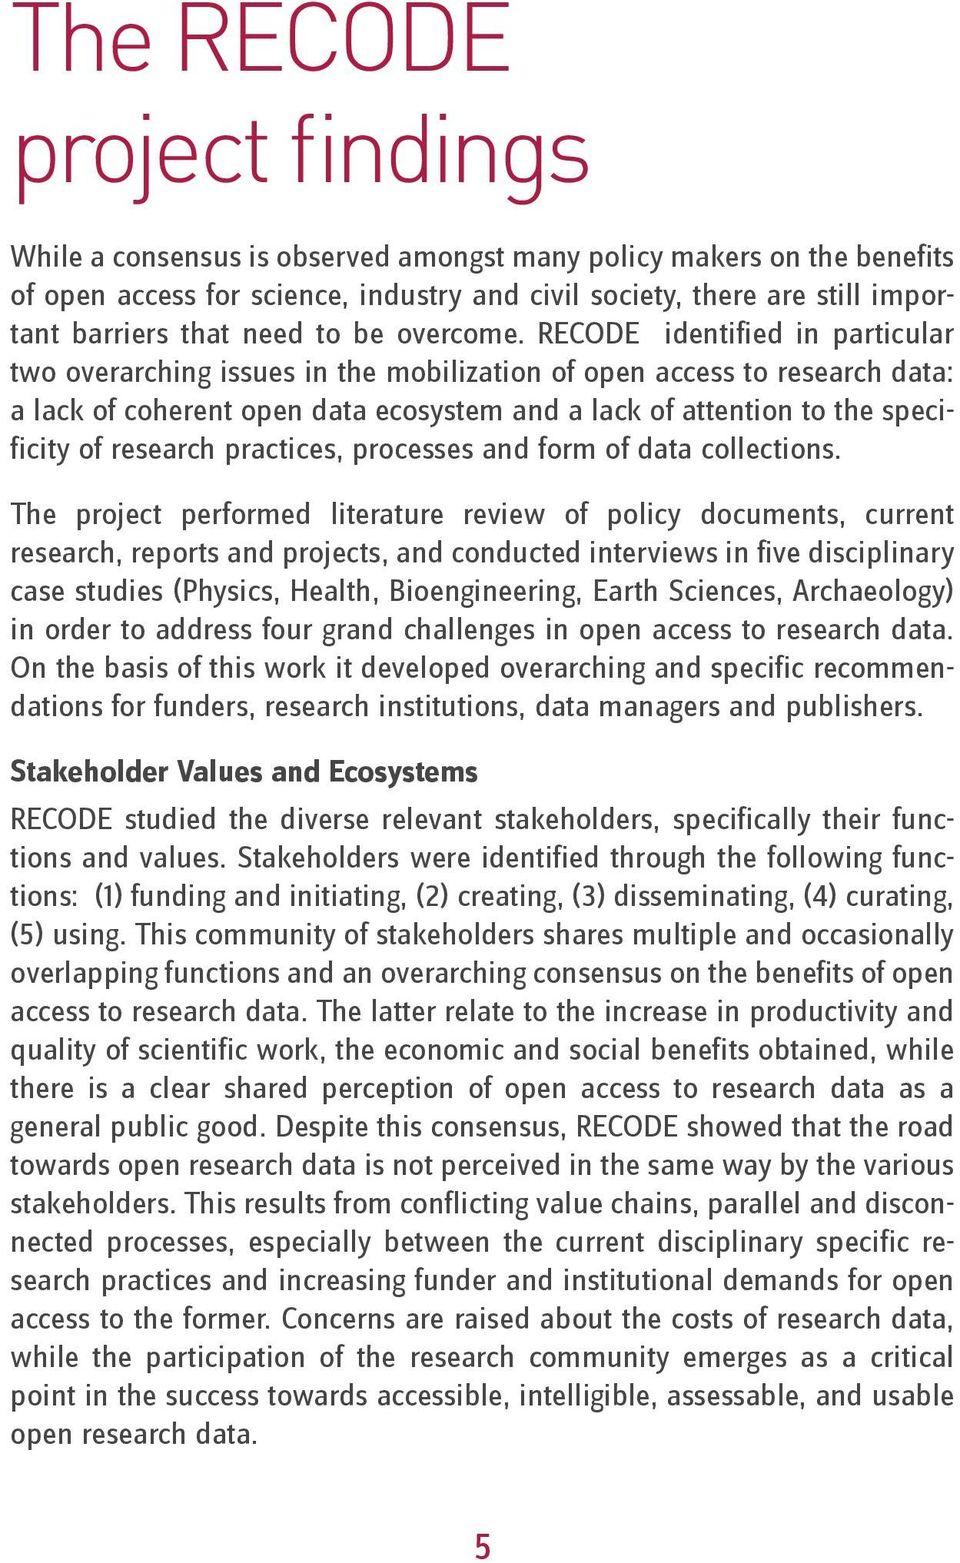 RECODE identified in particular two overarching issues in the mobilization of open access to research data: a lack of coherent open data ecosystem and a lack of attention to the specificity of